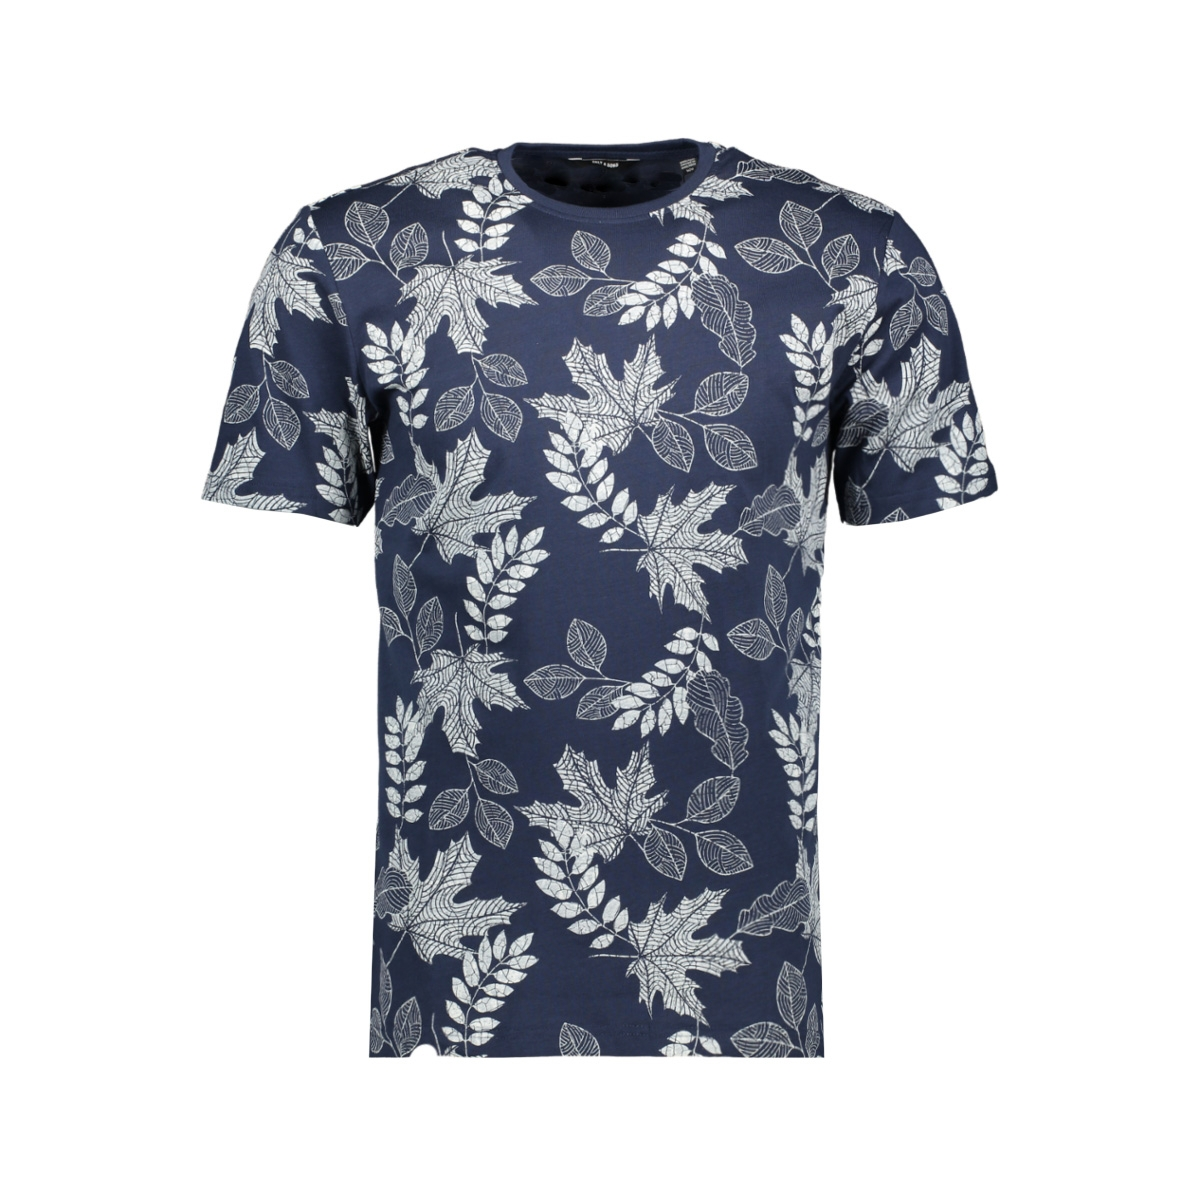 onsangus ss aop tee vd 22013657 only & sons t-shirt dress blues